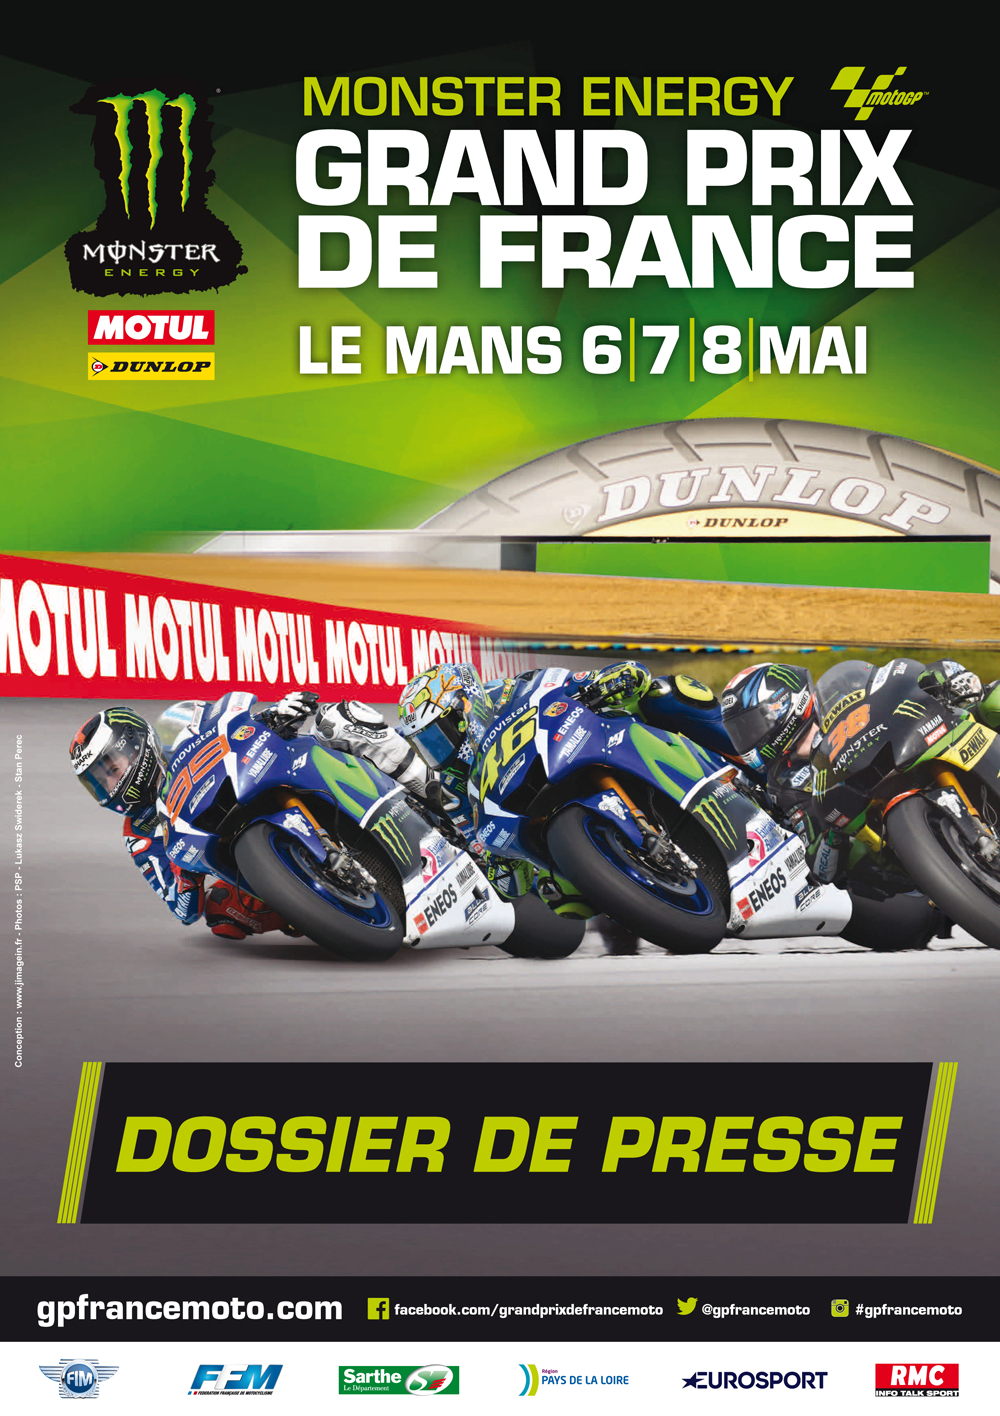 dossier de presse grand prix de france 2016 grand prix de france moto le mans 2019. Black Bedroom Furniture Sets. Home Design Ideas